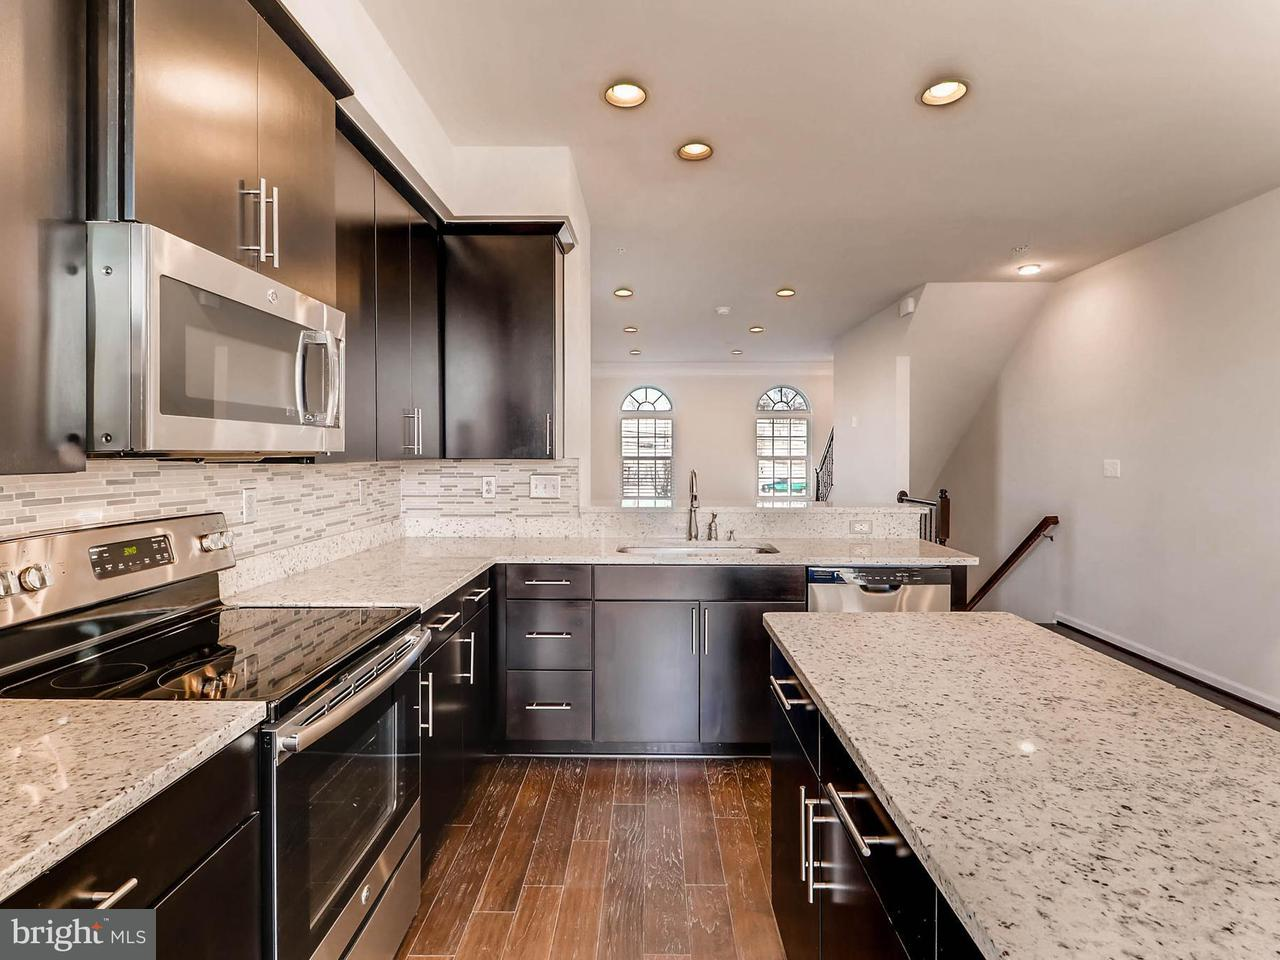 Other Residential for Rent at 120 Oldham St Baltimore, Maryland 21224 United States